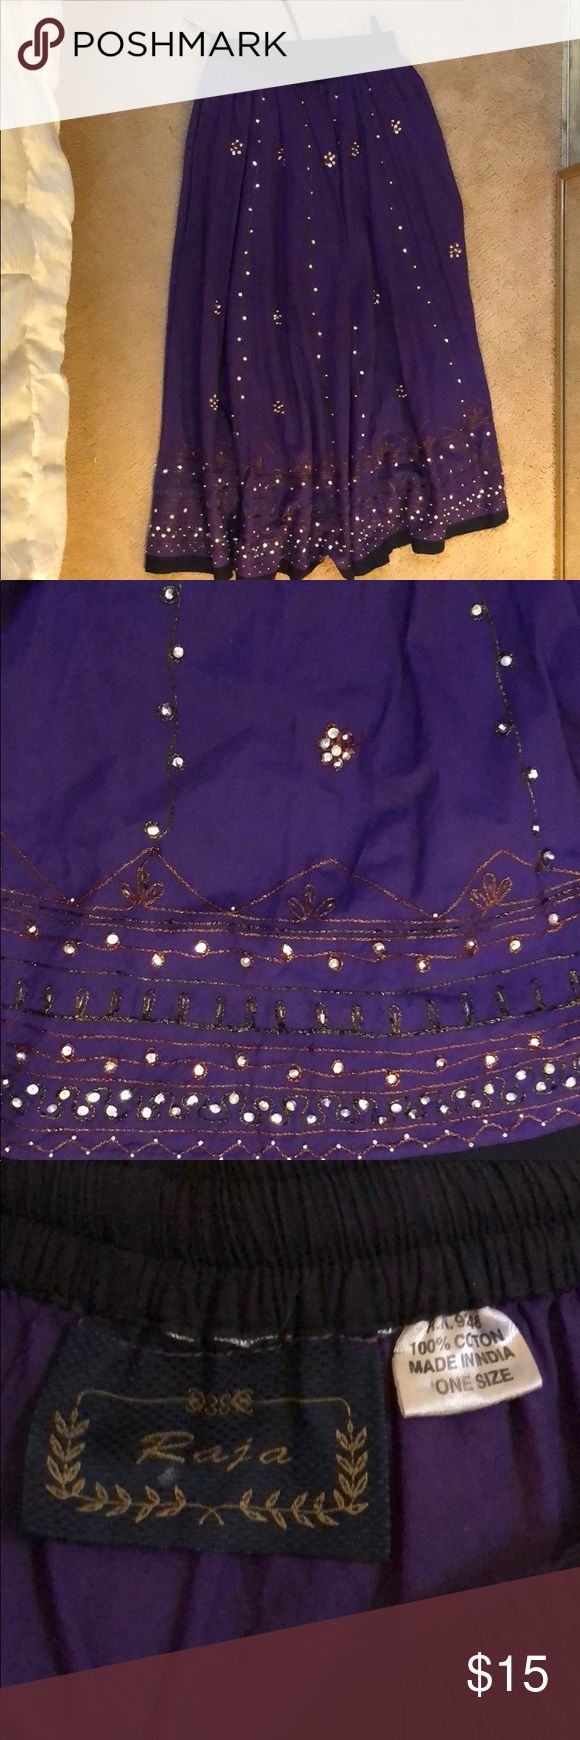 Women's Indian long skirt Beautiful colorful/ Purple Indian long skirt for women with drawstring fits most. Never worn- brand new! The sequin work is handmade by artisans of India. This Indian skirt can be worn with a matching top or tank top and is suitable for all occasions. raja Skirts A-Line or Full